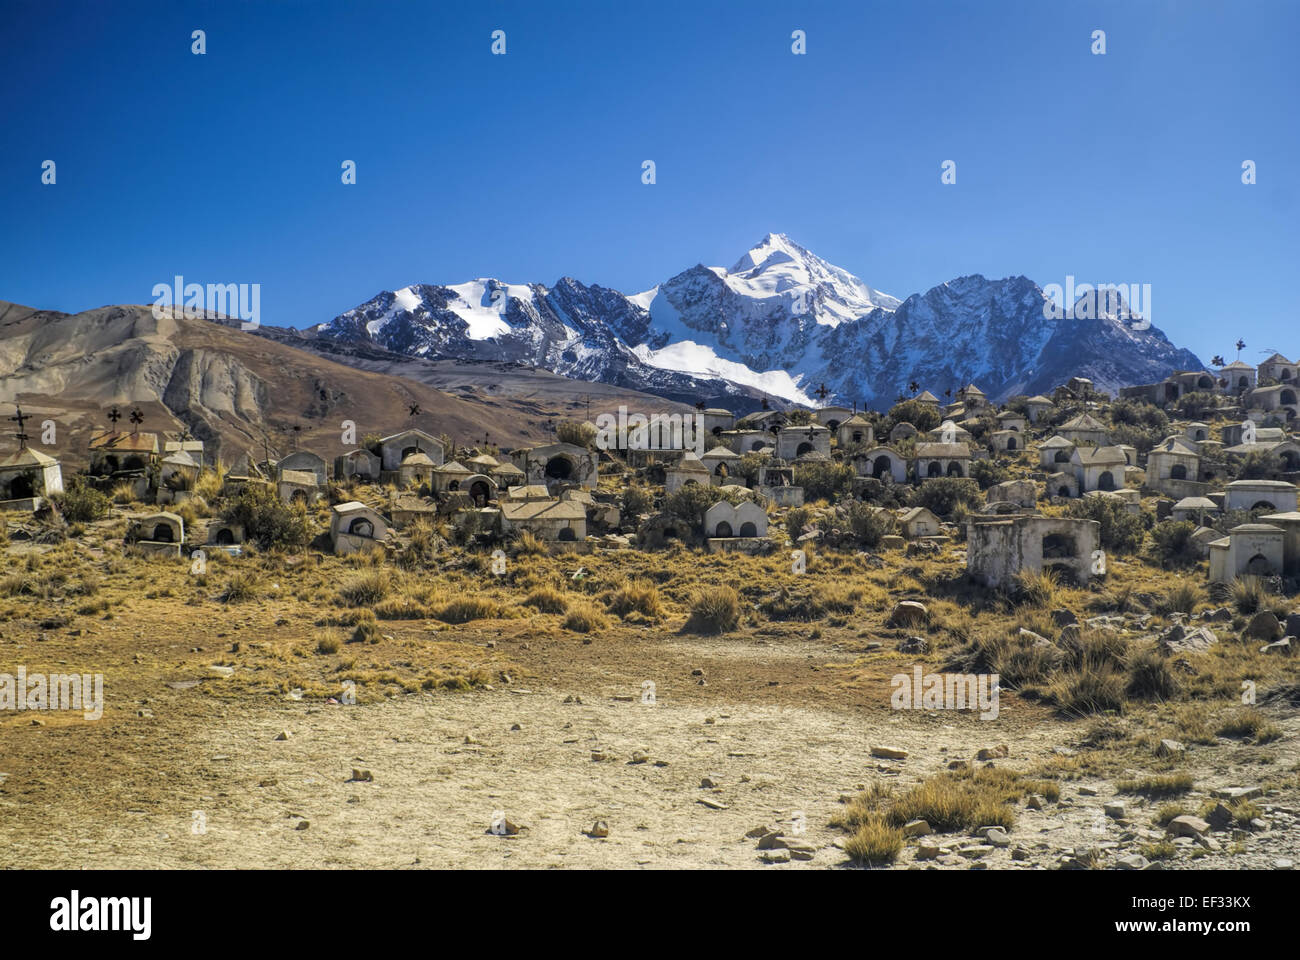 Graveyard with Huayna Potosi mountain in the background, peak in Bolivian Andes - Stock Image